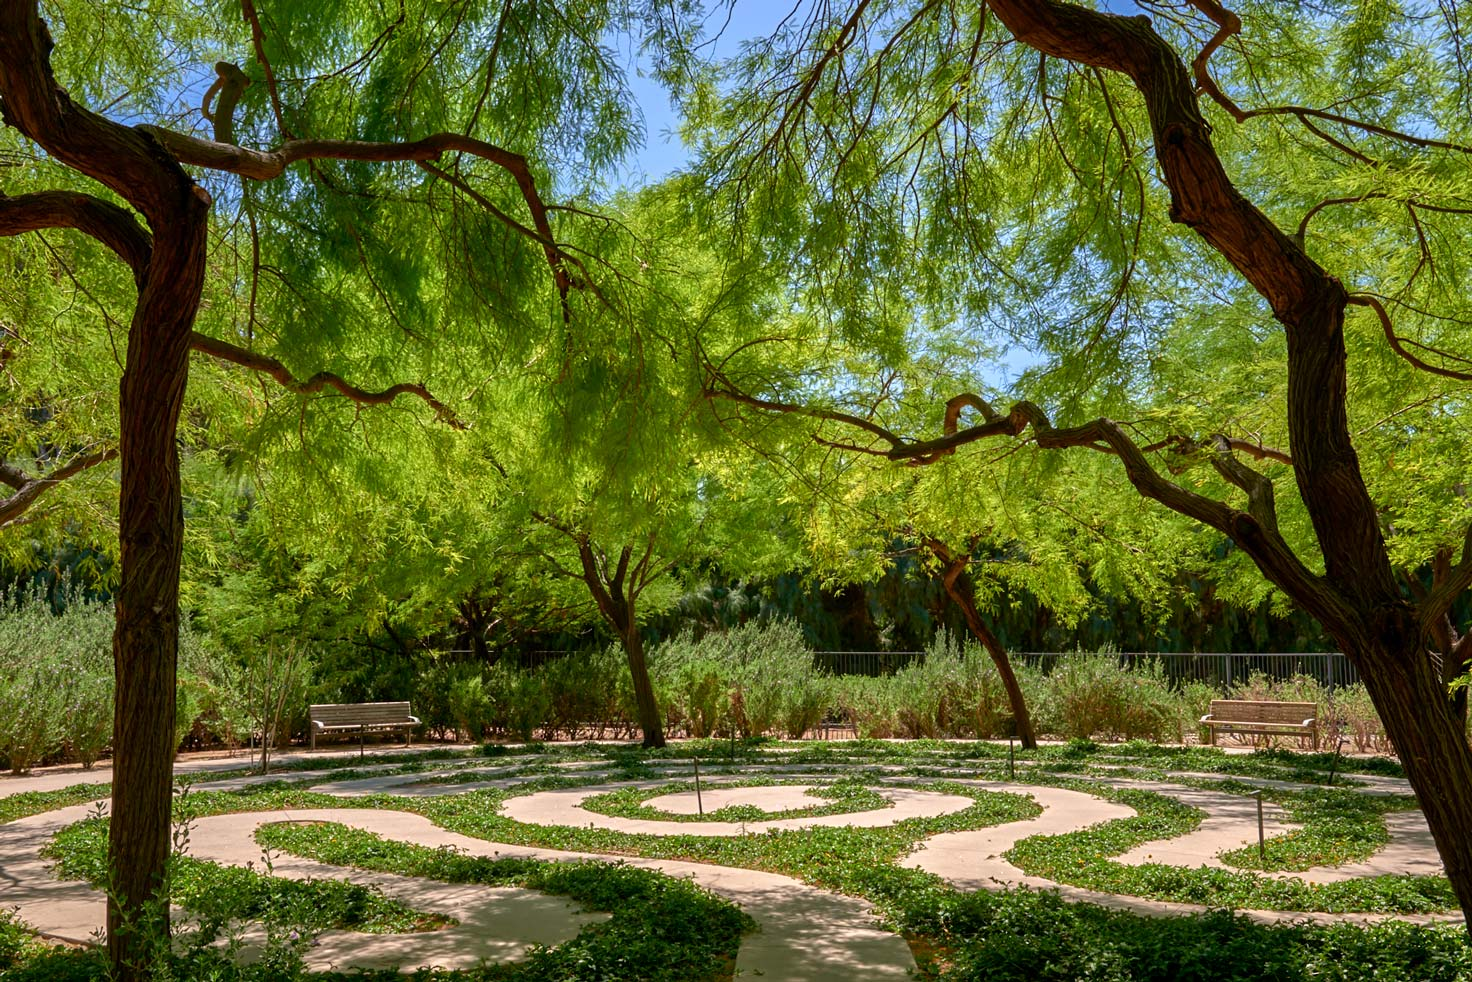 A view of the Labyrinth at Sunnylands Center and Gardens. The low-growing Wedelia winds around the cement path of the labyrinth. The labyrinth is surrounded by Mesquite trees.